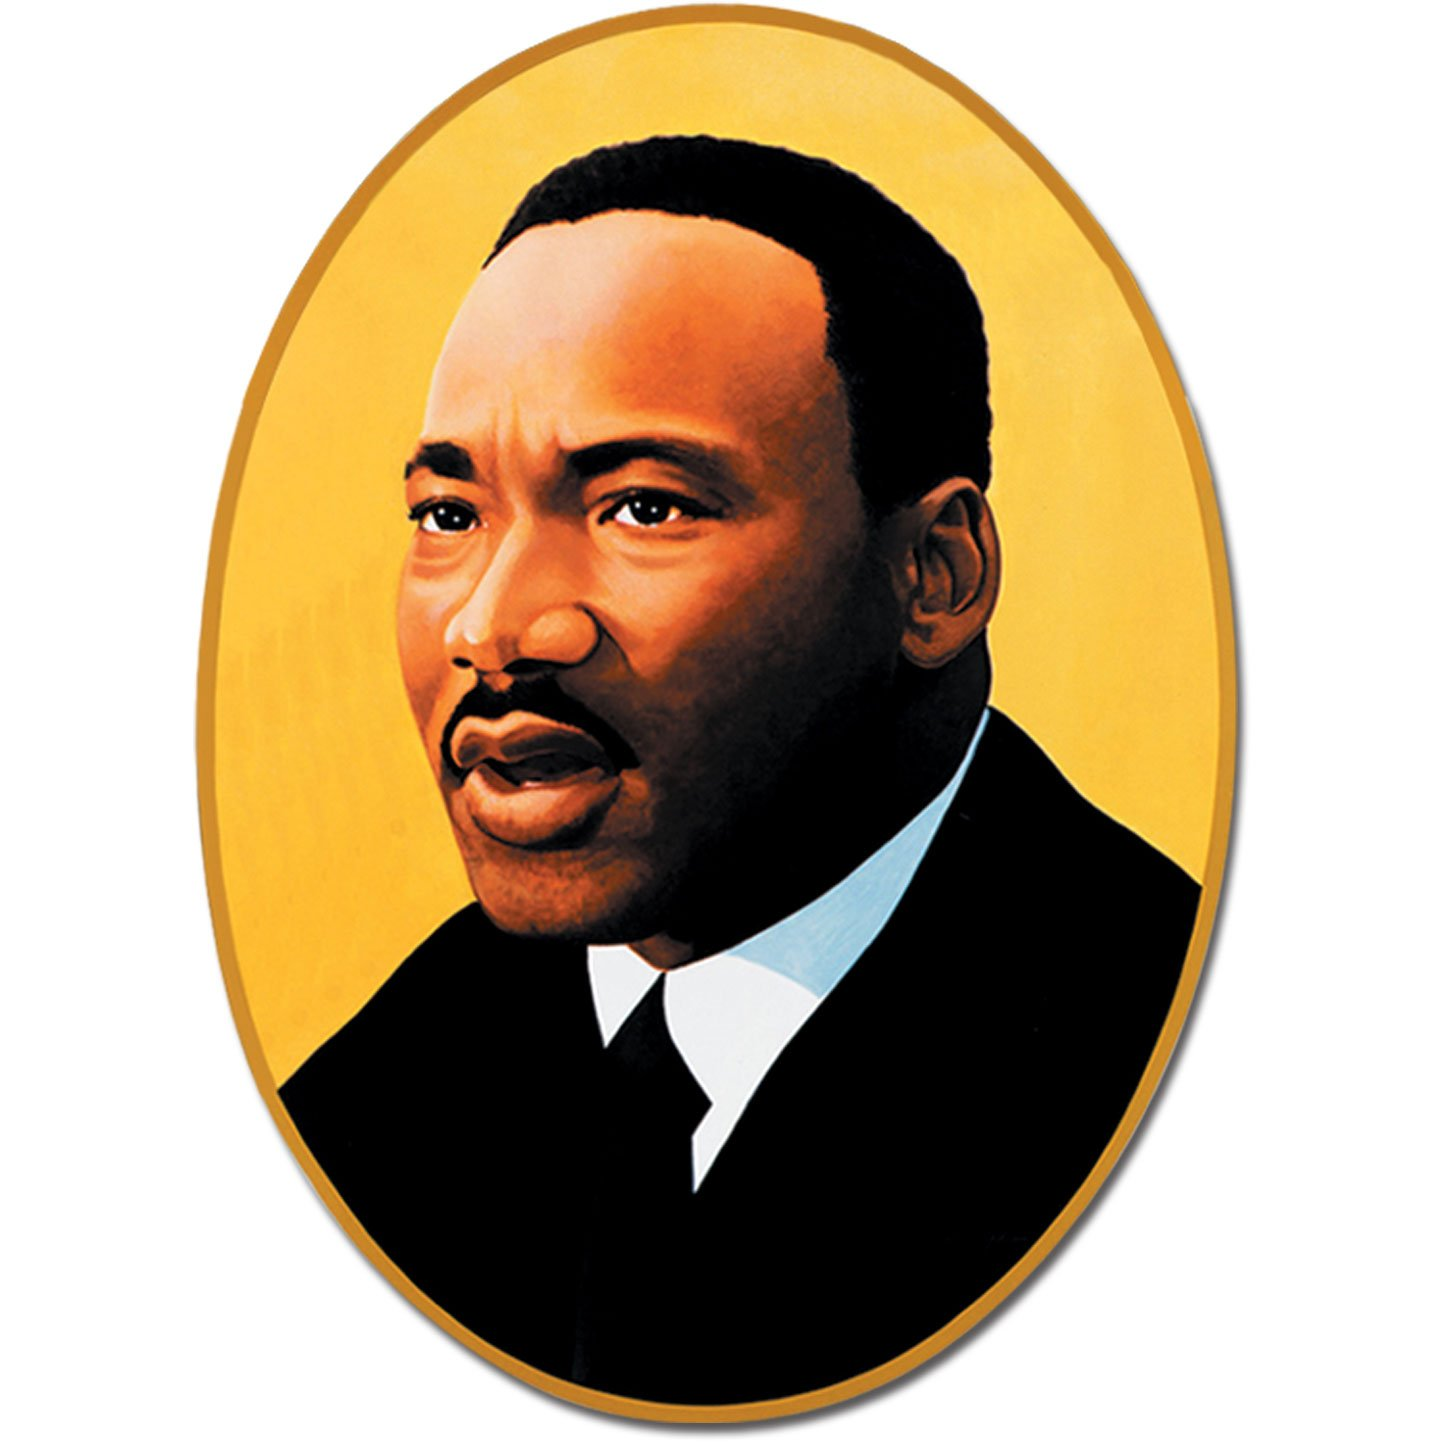 amazon com beistle 55843 martin luther king cutout 25 inch party rh amazon com martin luther king jr clipart martin luther king day clip art